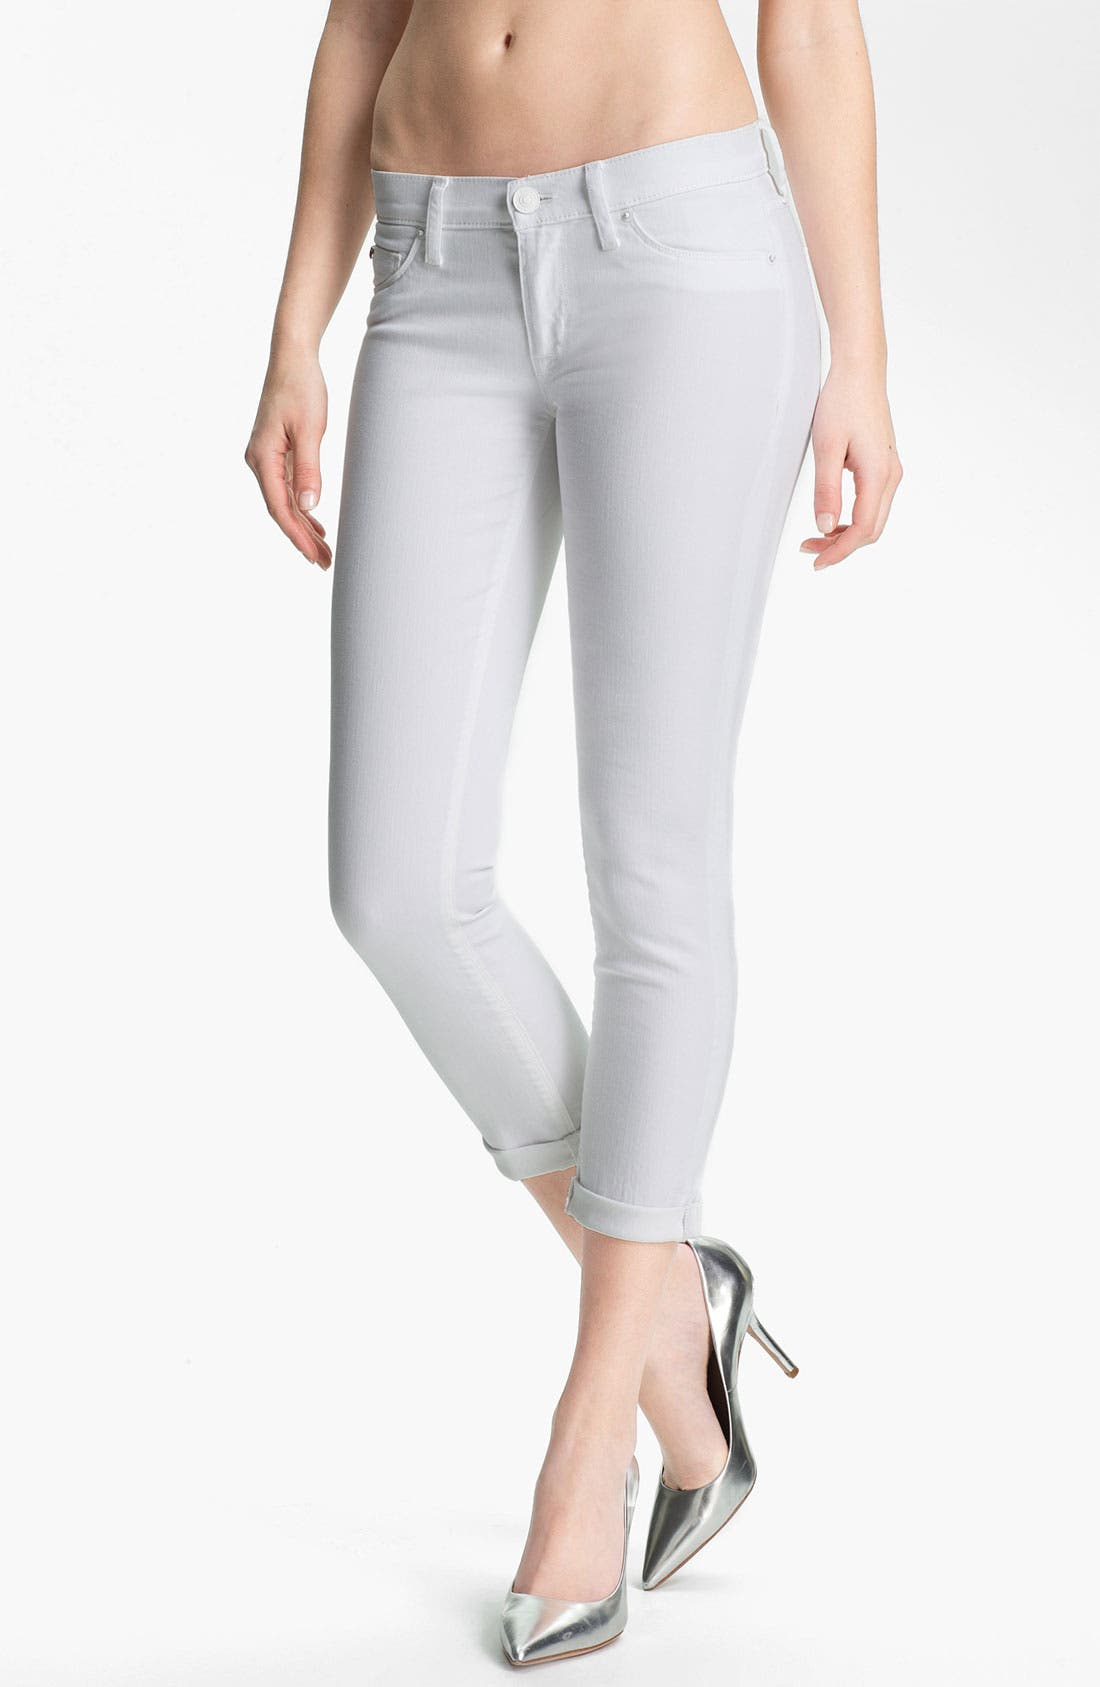 Main Image - Hudson Jeans 'Collette' Cuff Skinny Jeans (White)